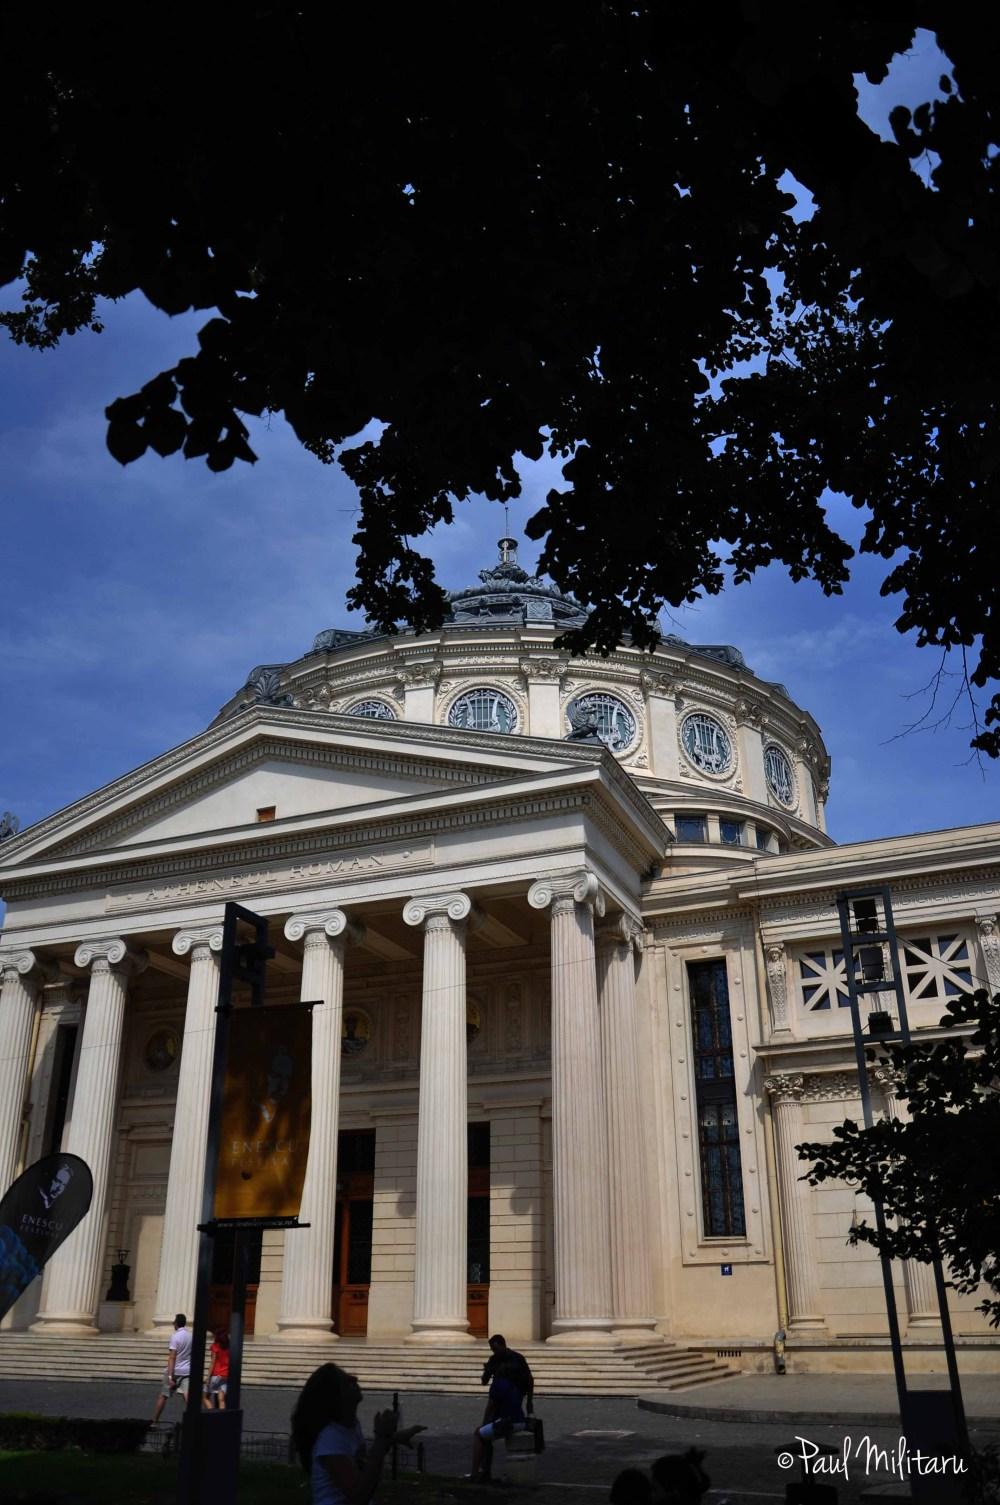 Bucharest - the Romanian Athenaeum